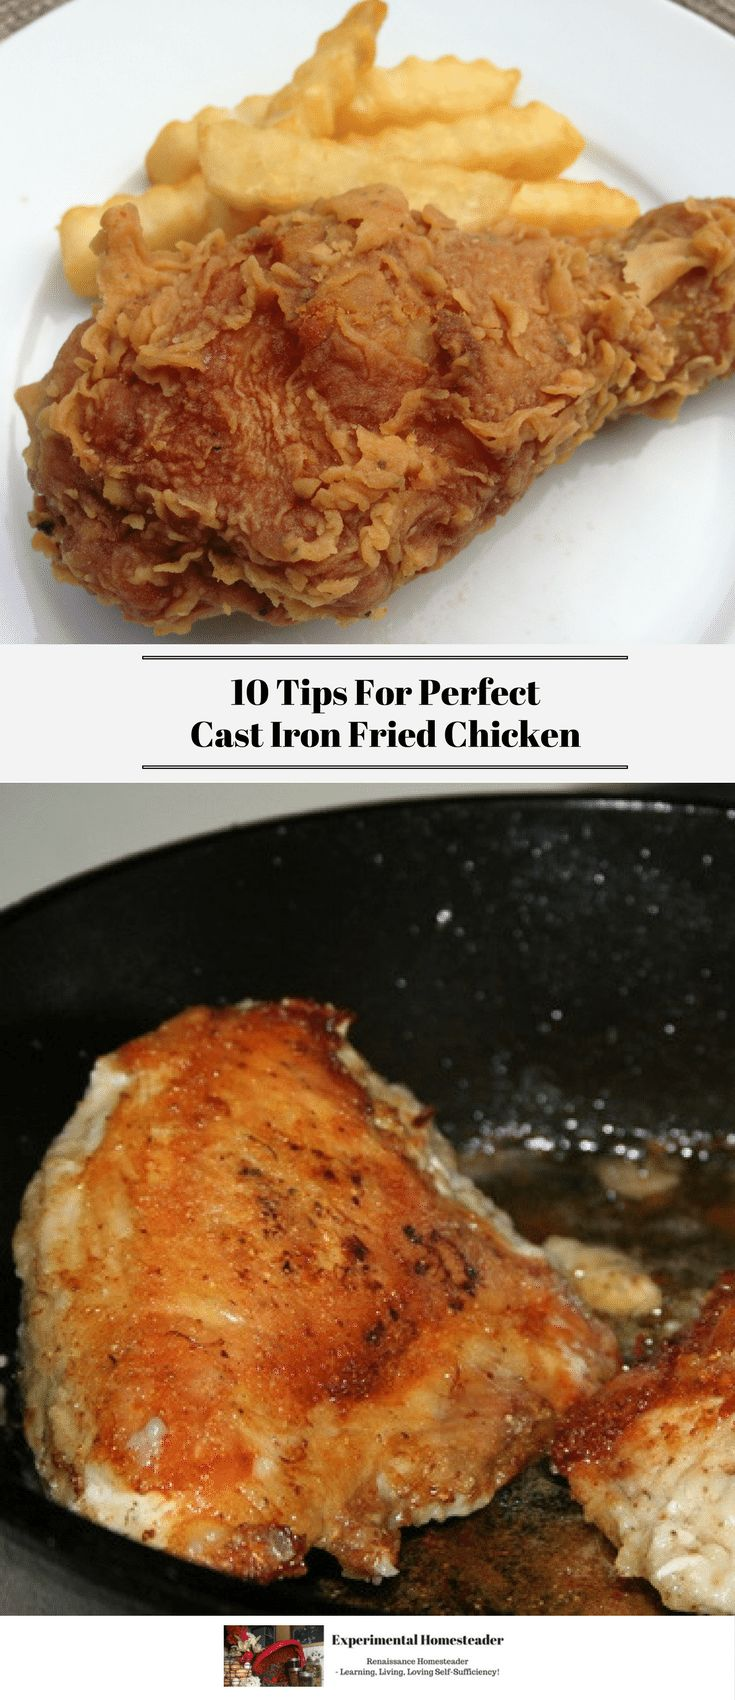 10 Tips For Perfect Cast Iron Fried Chicken